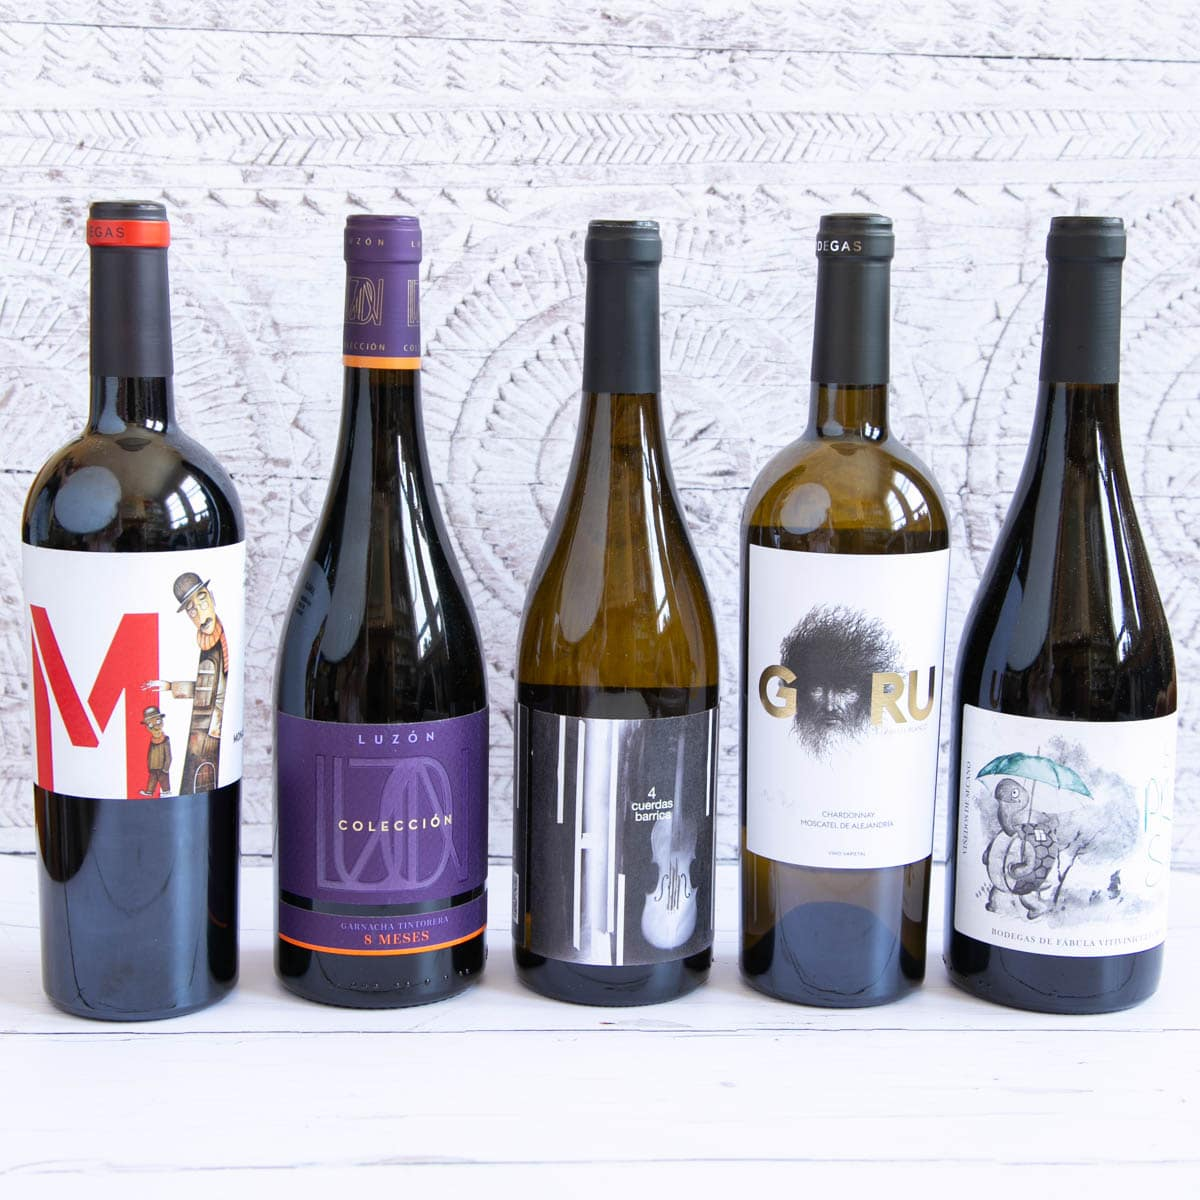 Five bottles of wine from Murcia, lined up in a row. Three red and two white wines, each with a stylish label.